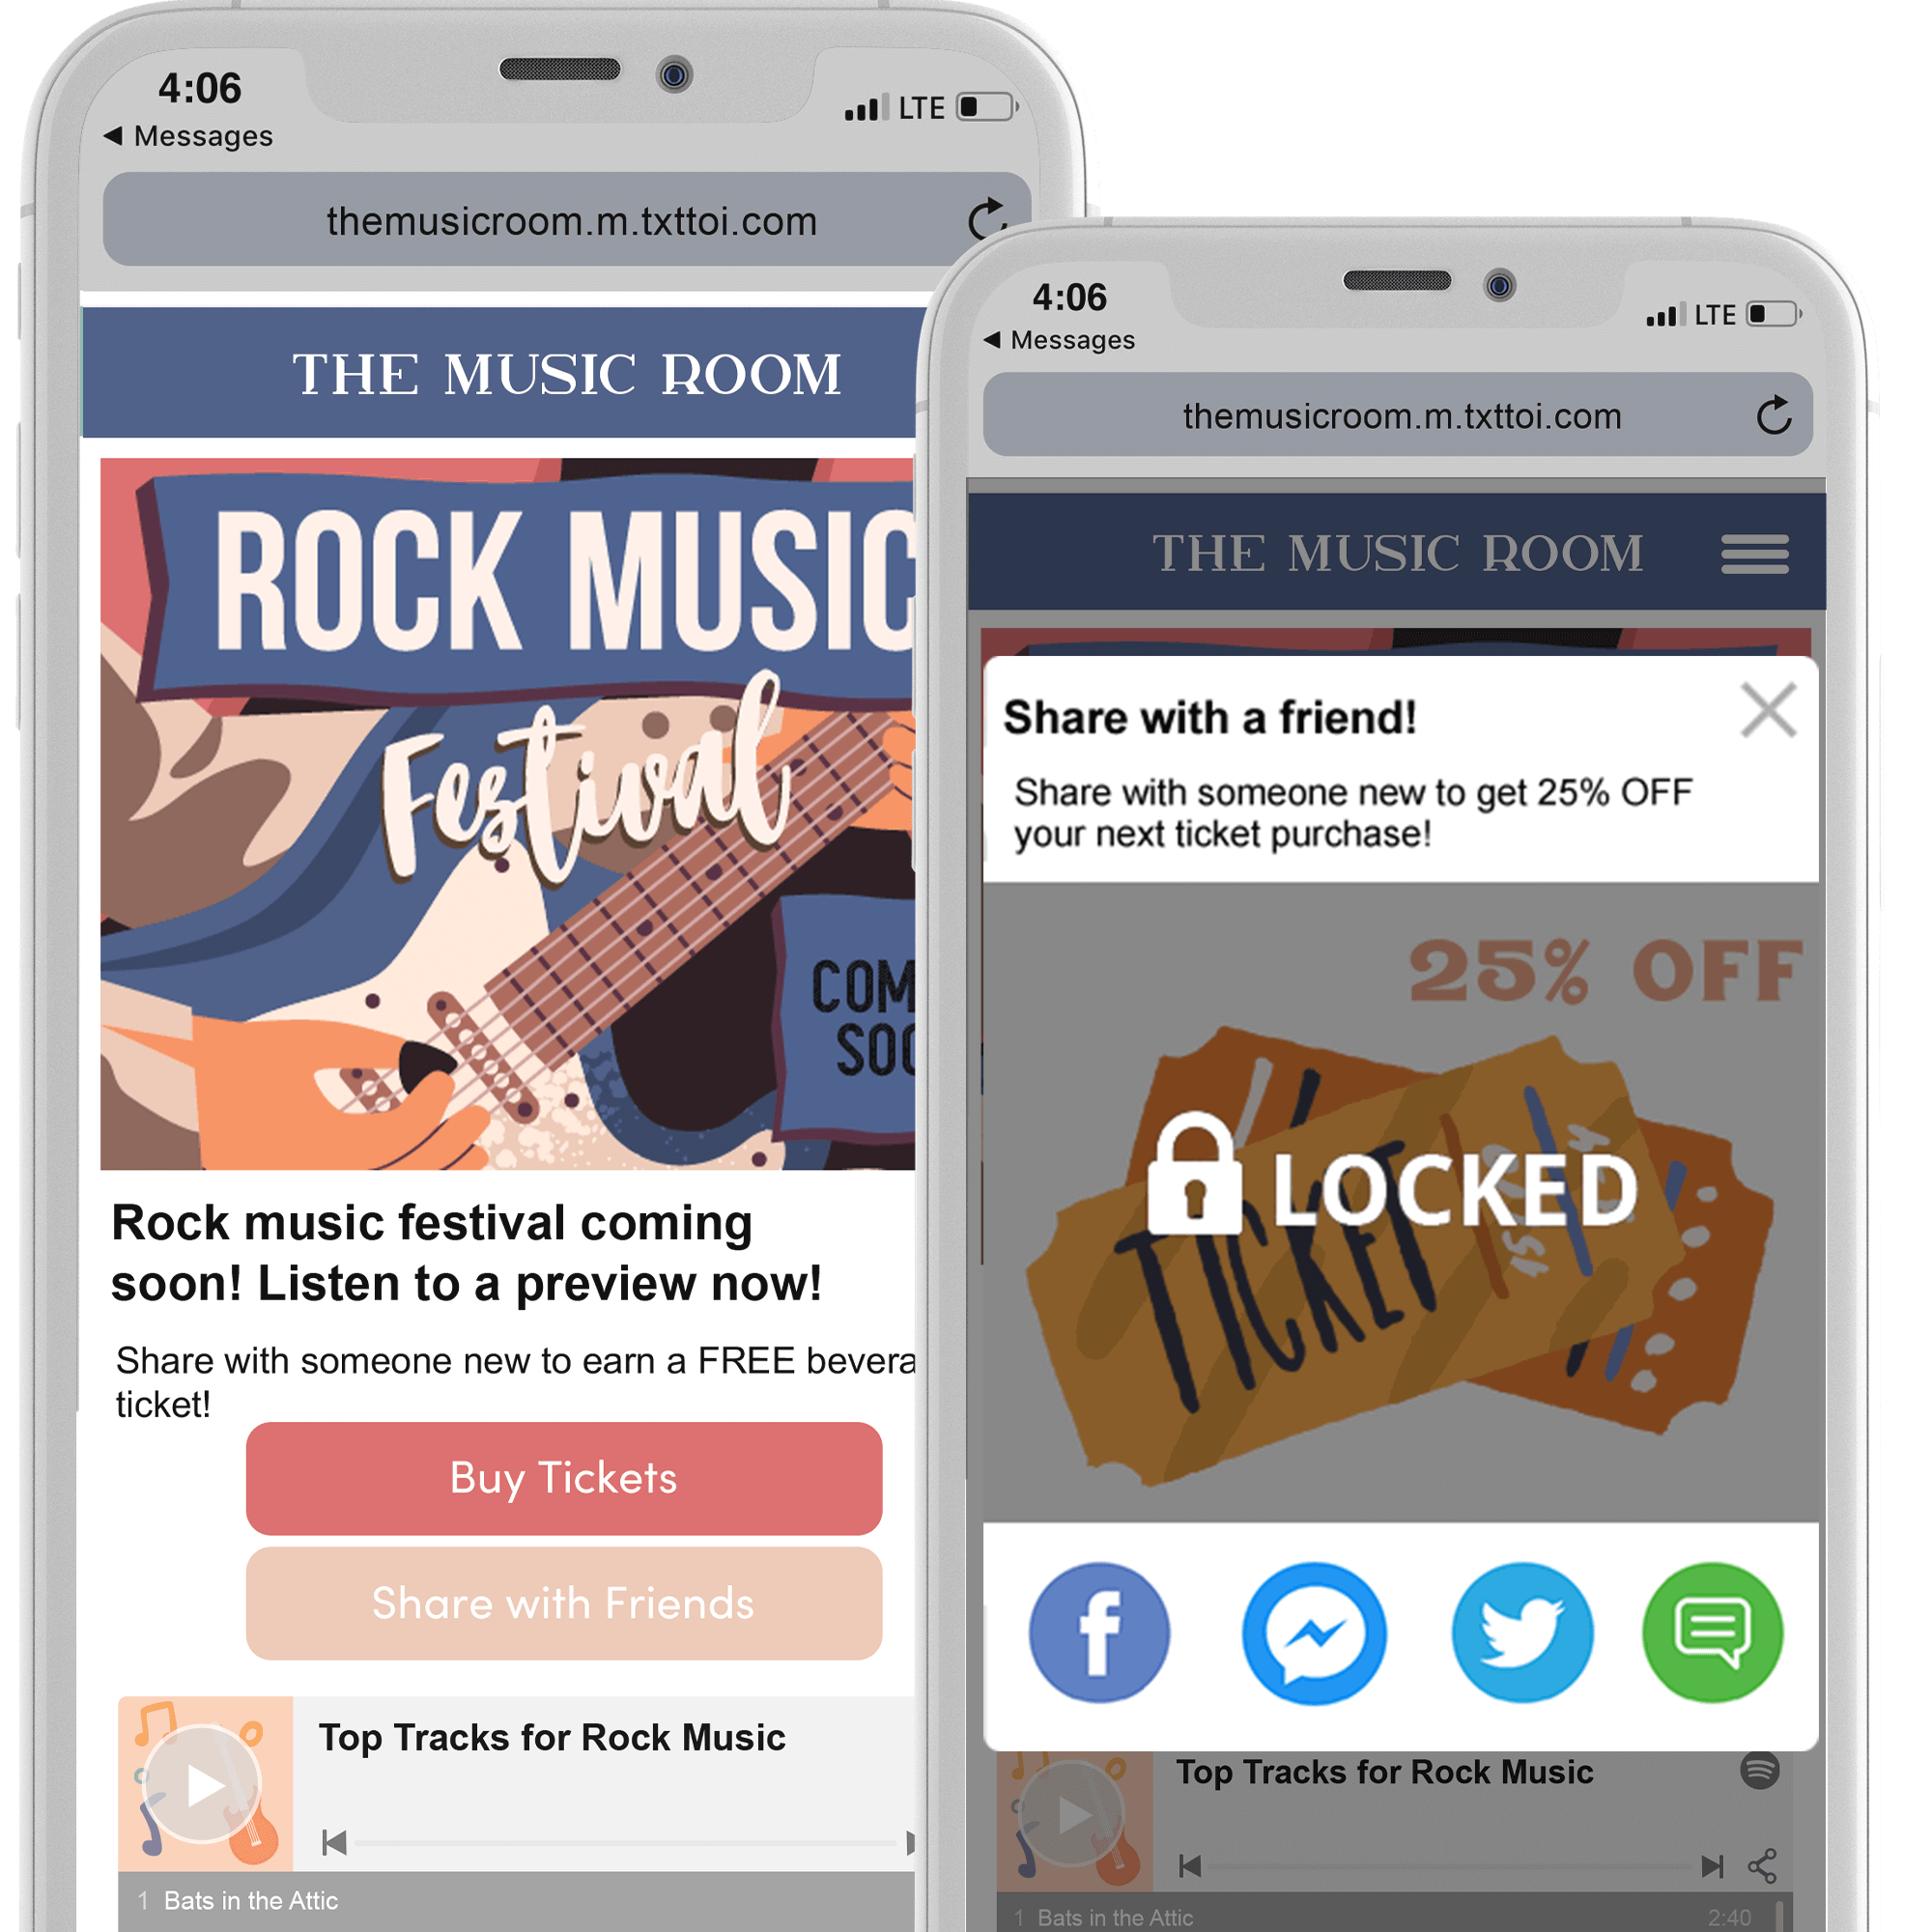 Music and Events Centers share to earn bonus offers example phones